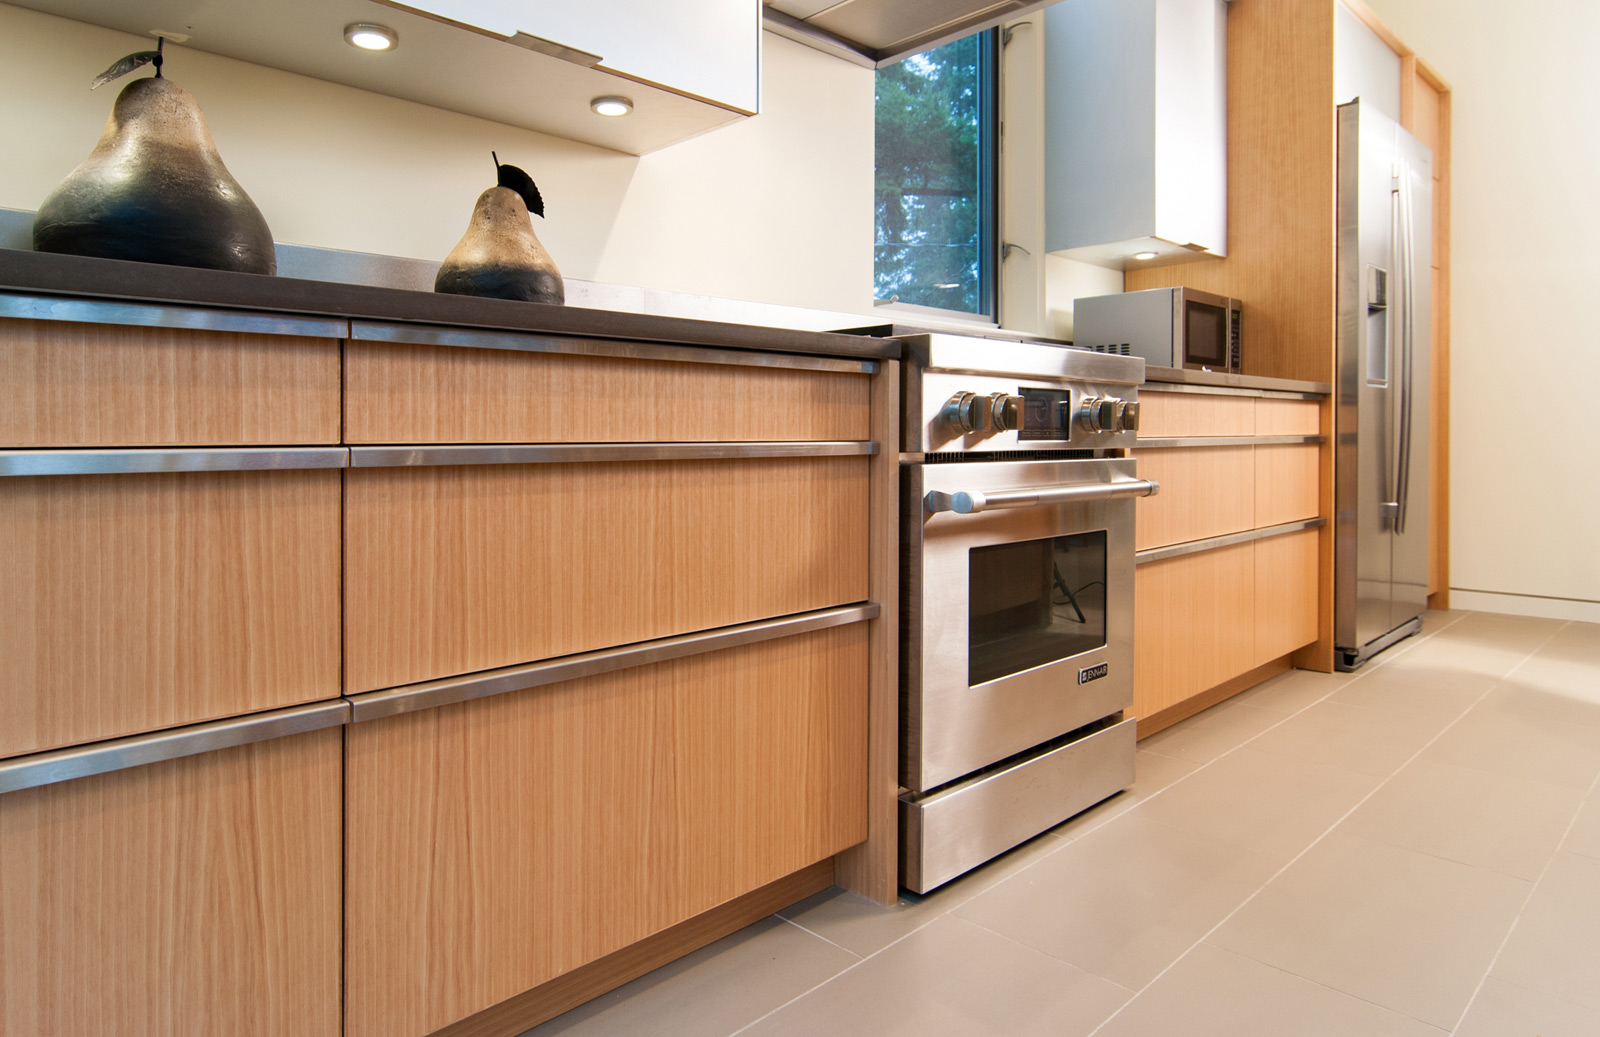 Case study house cabinets livemodern your best modern home for Birch kitchen cabinets review